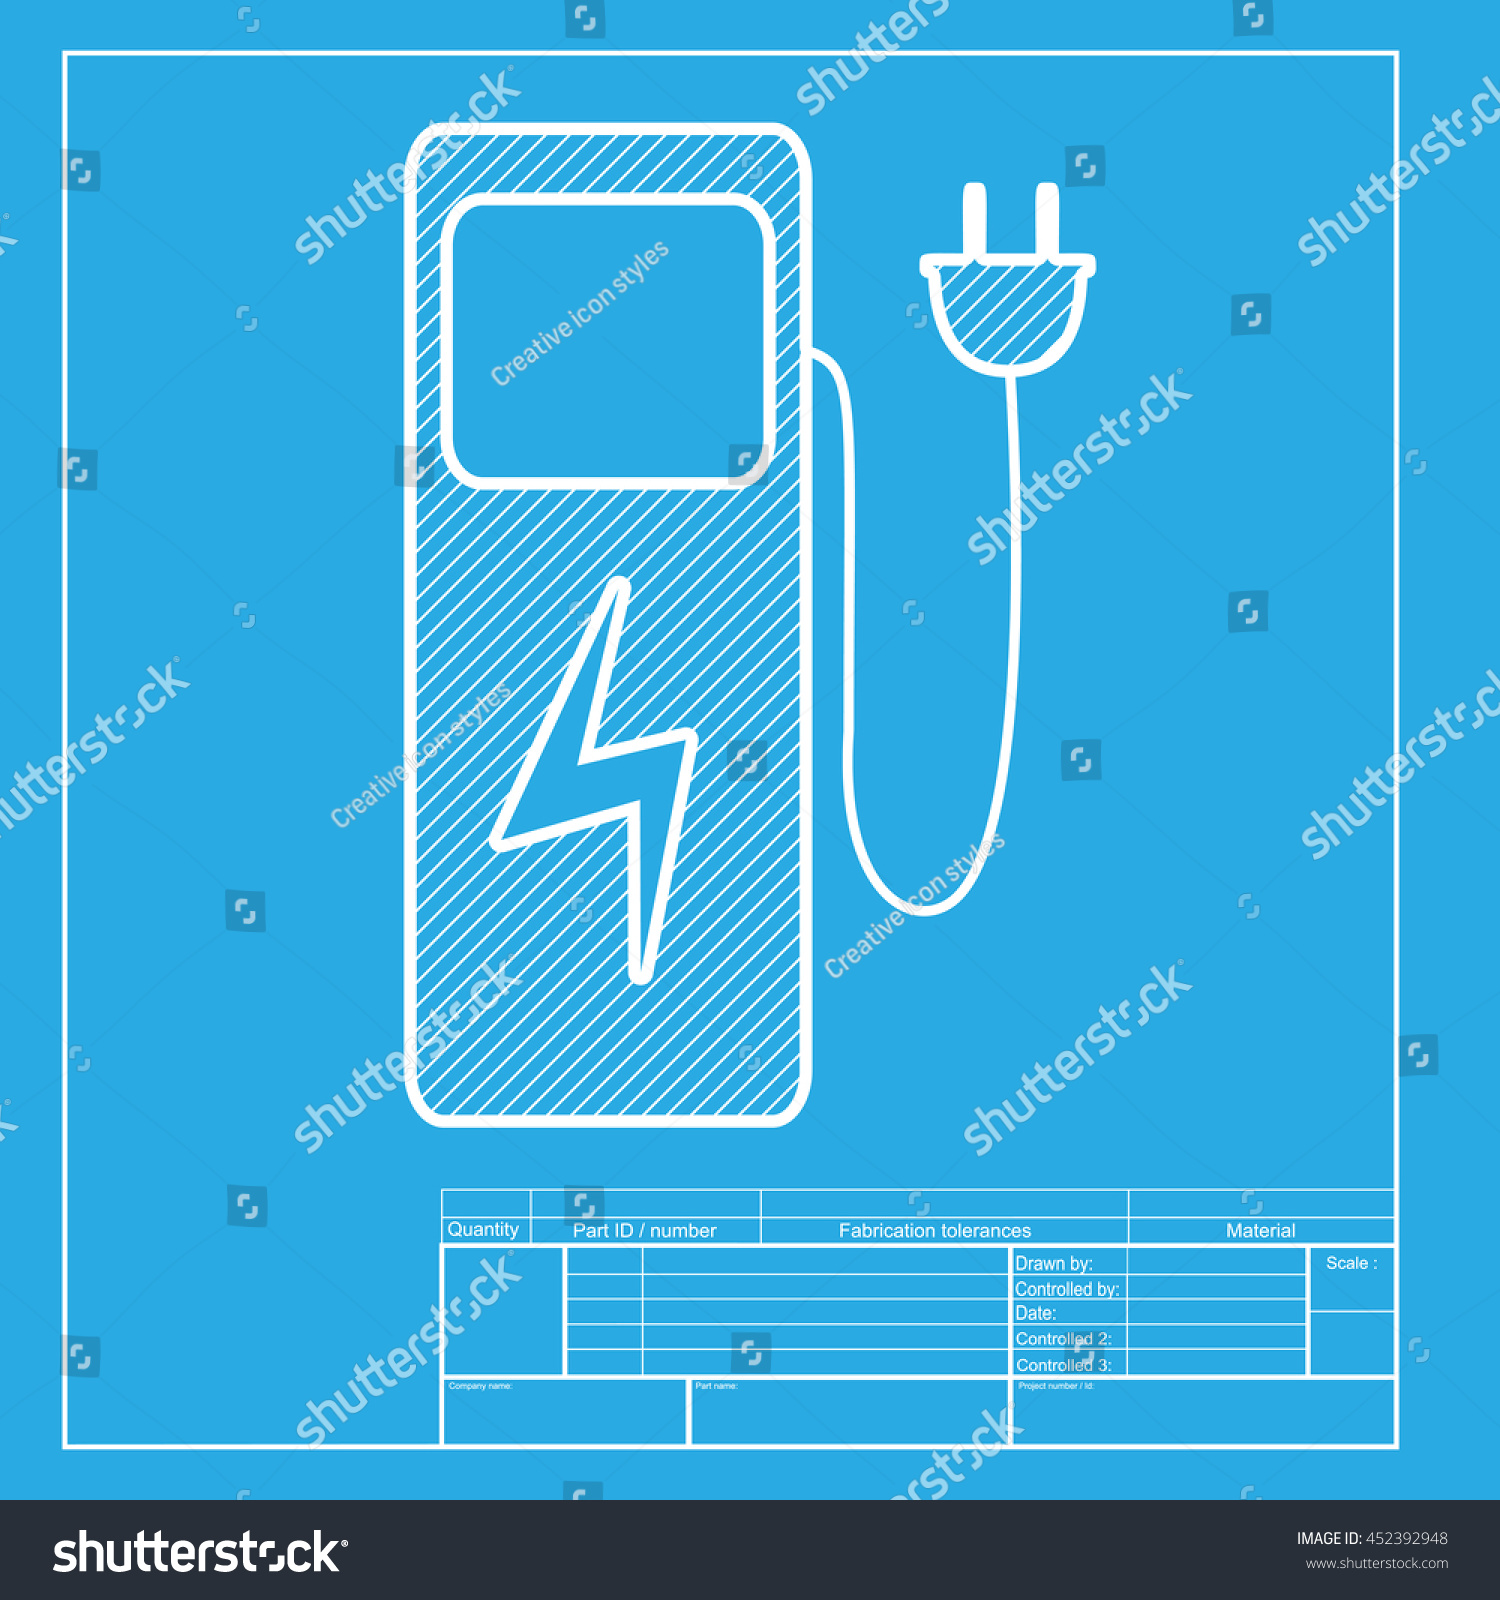 Electric car charging station sign white stock illustration electric car charging station sign white section of icon on blueprint template malvernweather Image collections